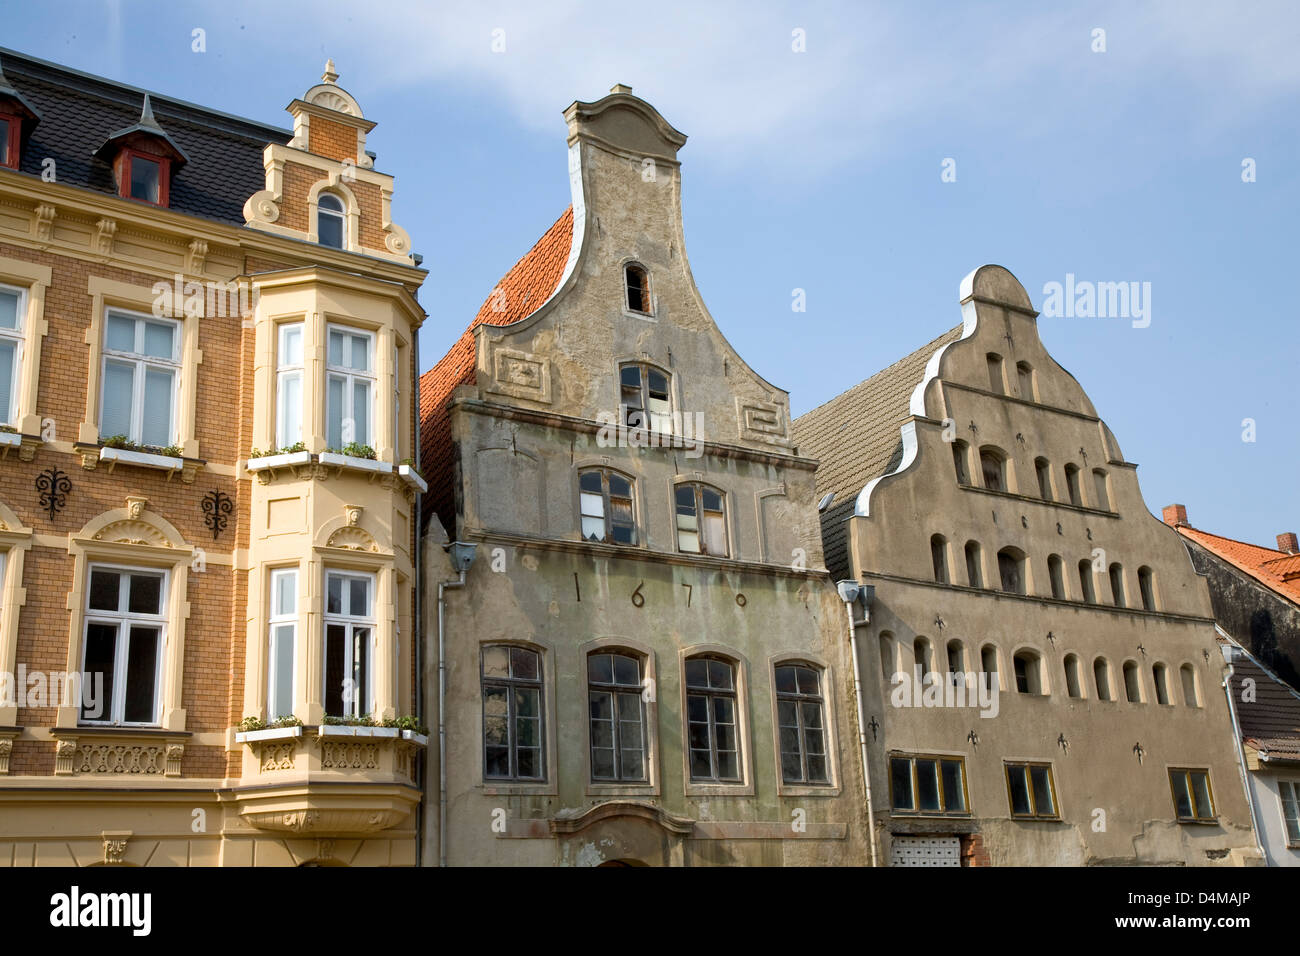 Wismar, Germany, Haeuserzeile in the old town - Stock Image